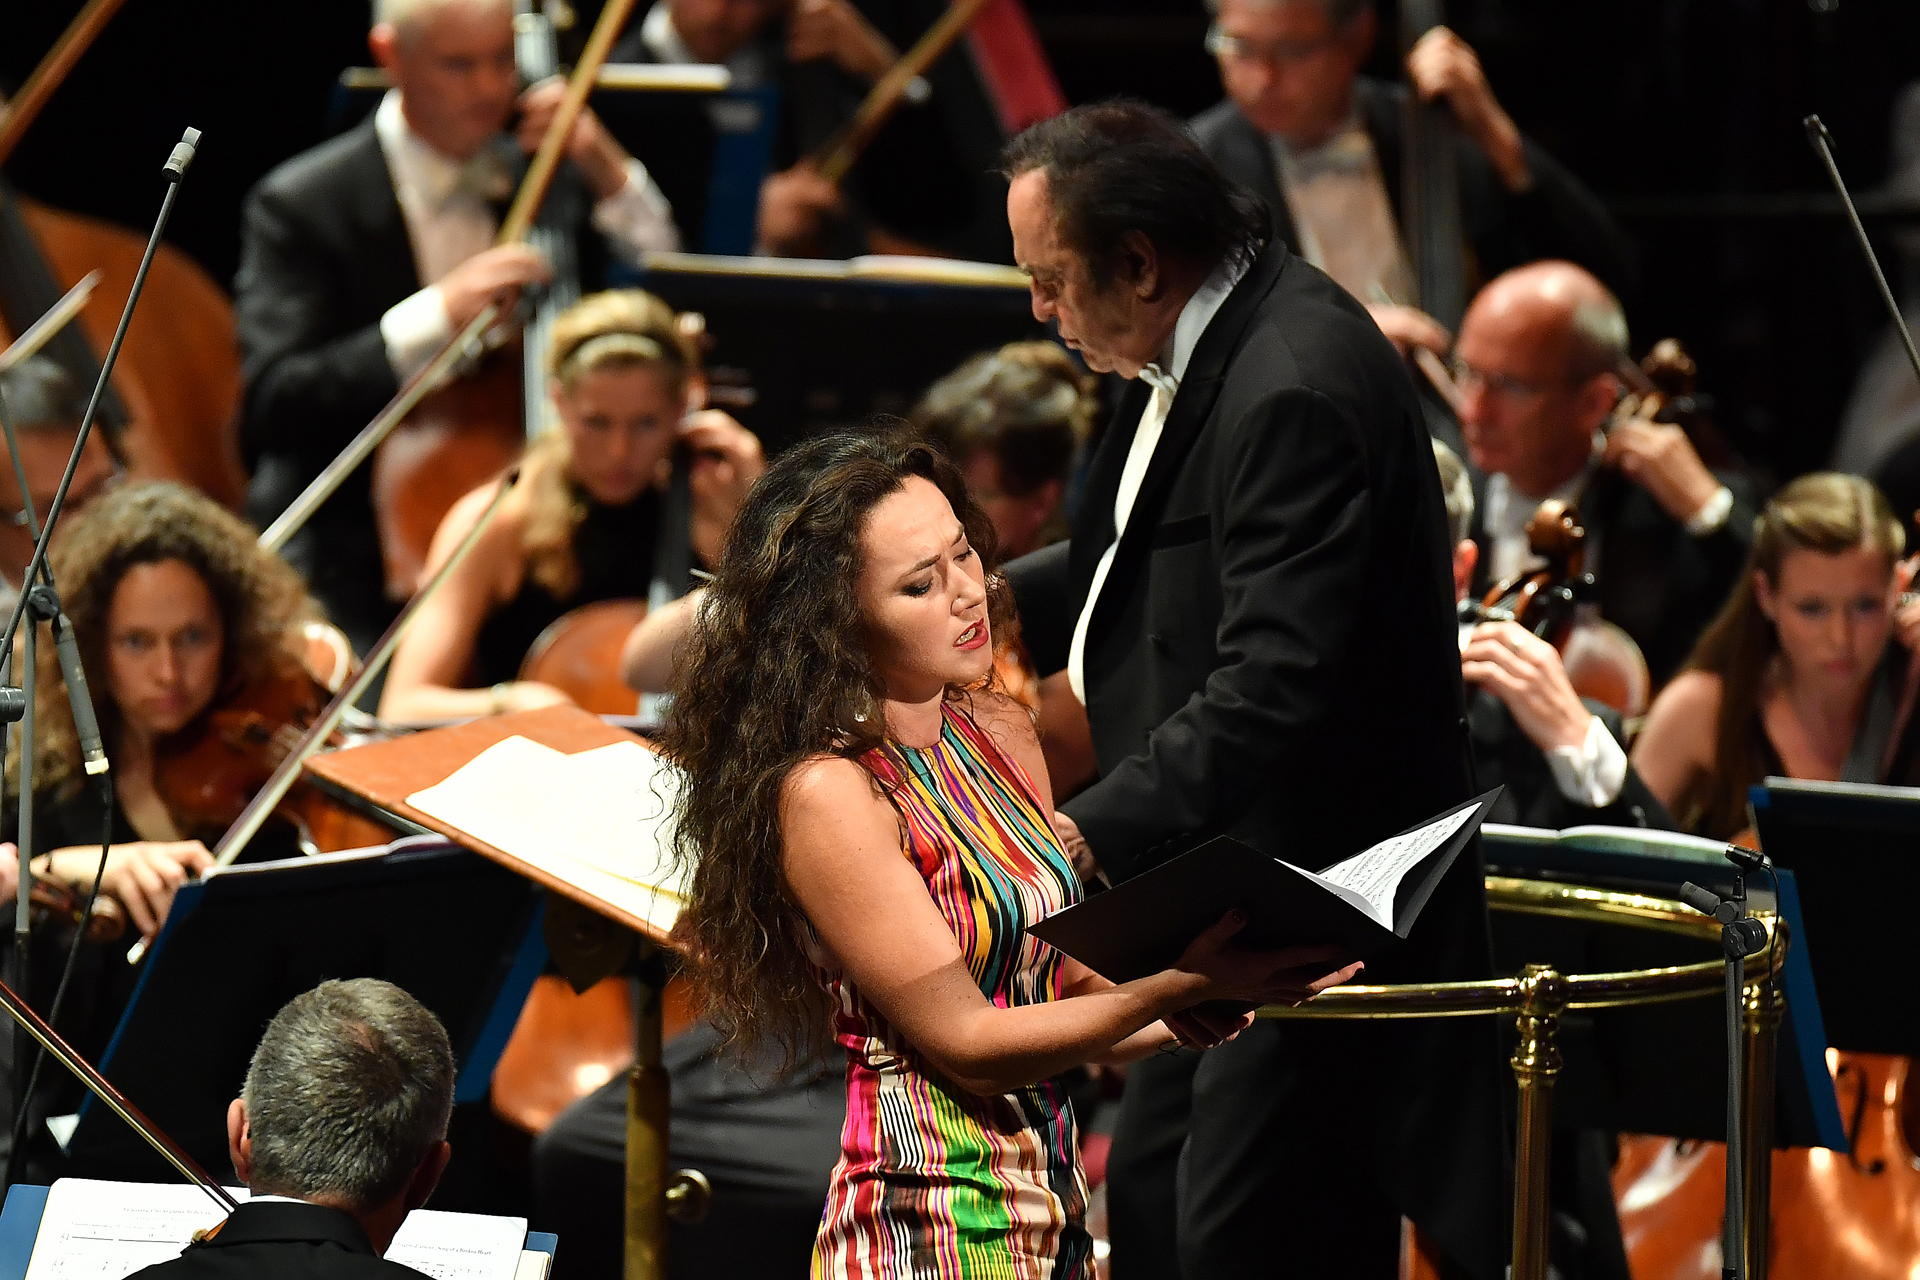 Mezzo-soprano Stéphanie d'Oustrac performs Manuel de Falla's El amor brujo with the Royal Philharmonic Orchestra conducted by Charles Dutoit at the BBC Proms at the Royal Albert Hall.  Featuring: Stéphanie d'Oustrac, Charles Dutoit Where: London, United Kingdom When: 17 Aug 2017 Credit: BBC/Chris Christodoulou/Supplied by WENN.com  **WENN does not claim any ownership including but not limited to Copyright, License in attached material. Fees charged by WENN are for WENN's services only, do not, nor are they intended to, convey to the user any ownership of Copyright, License in material. By publishing this material you expressly agree to indemnify, to hold WENN, its directors, shareholders, employees harmless from any loss, claims, damages, demands, expenses (including legal fees), any causes of action, allegation against WENN arising out of, connected in any way with publication of the material.**